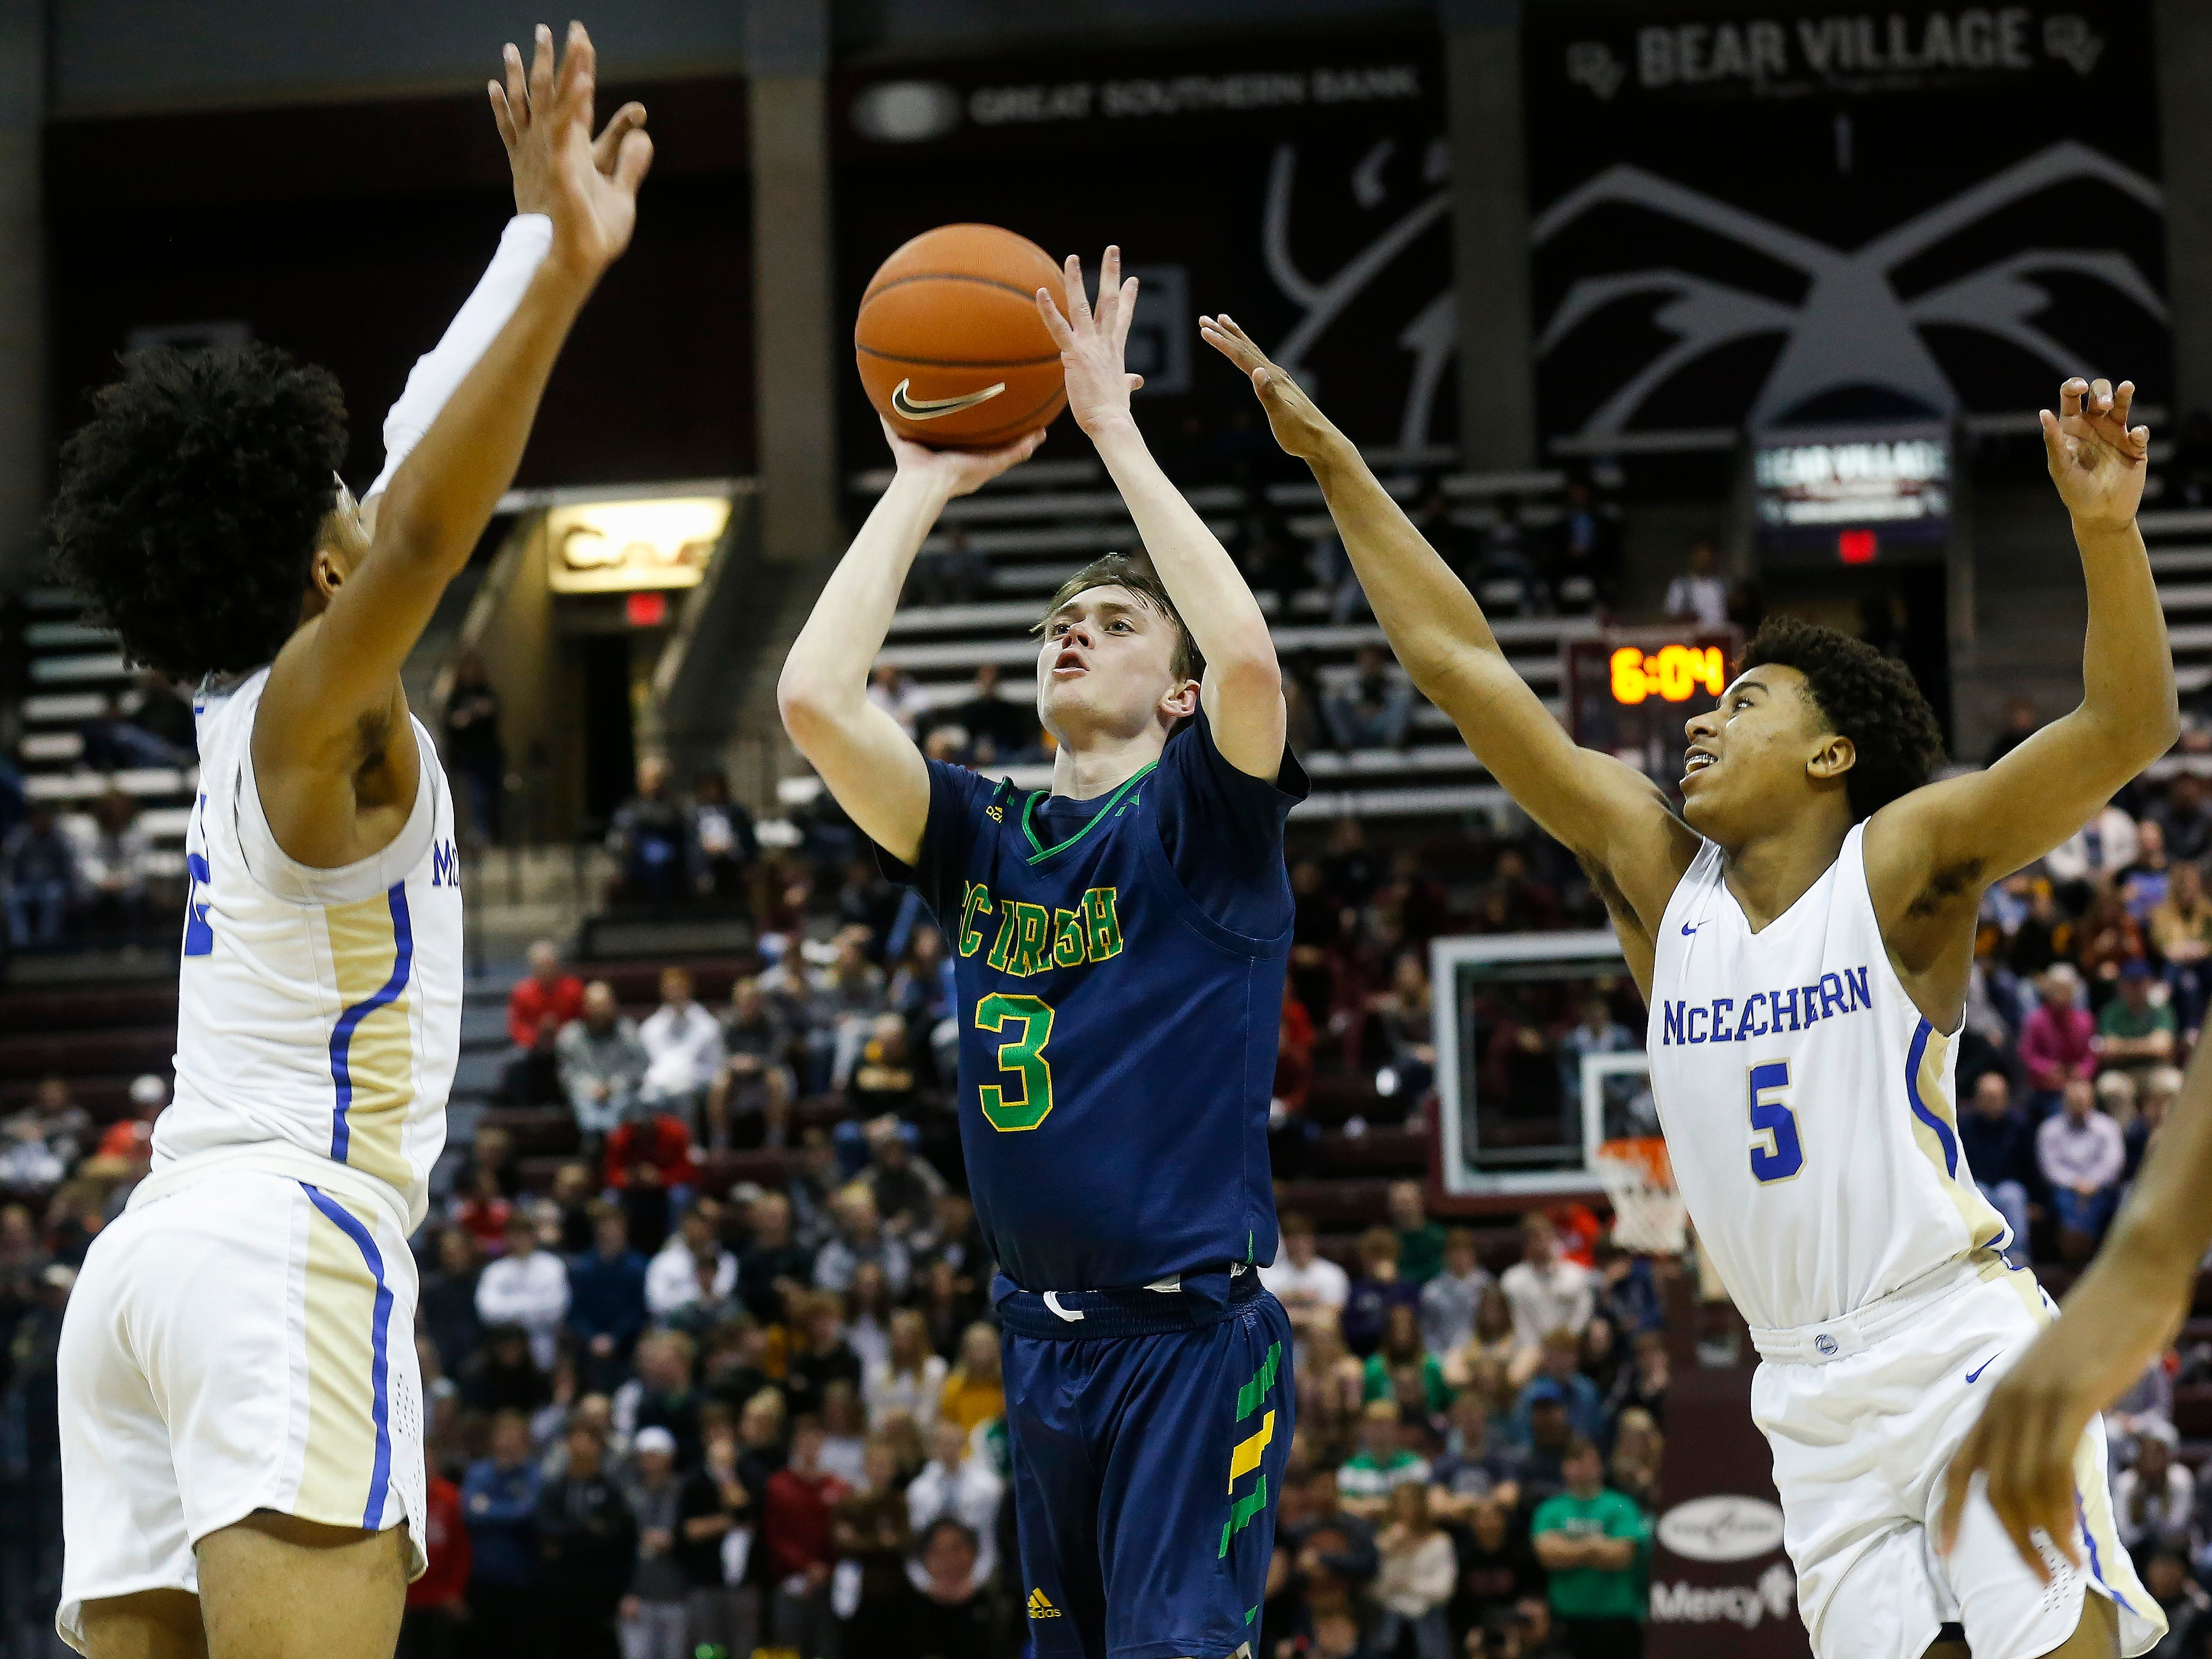 Jake Branham, of Springfield Catholic, shoots the ball during the Irish's  game against McEachern at the Bass Pro Shops Tournament of Champions at JQH Arena on Thursday, Jan. 17, 2019.